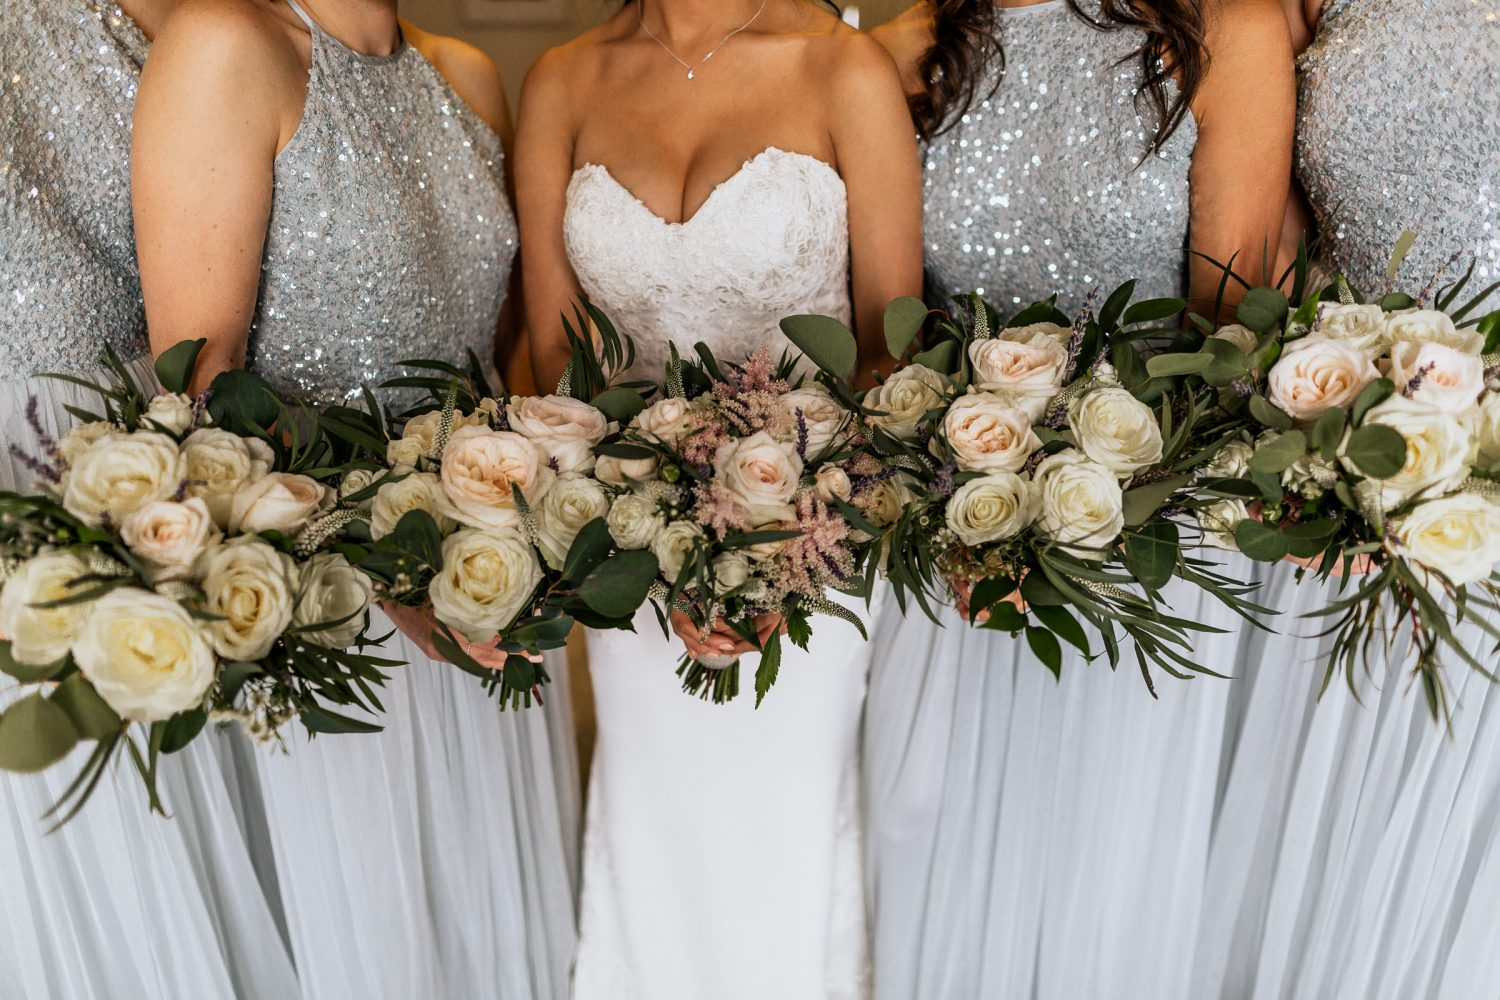 Four bridesmaids and bride holding five rose bouquets